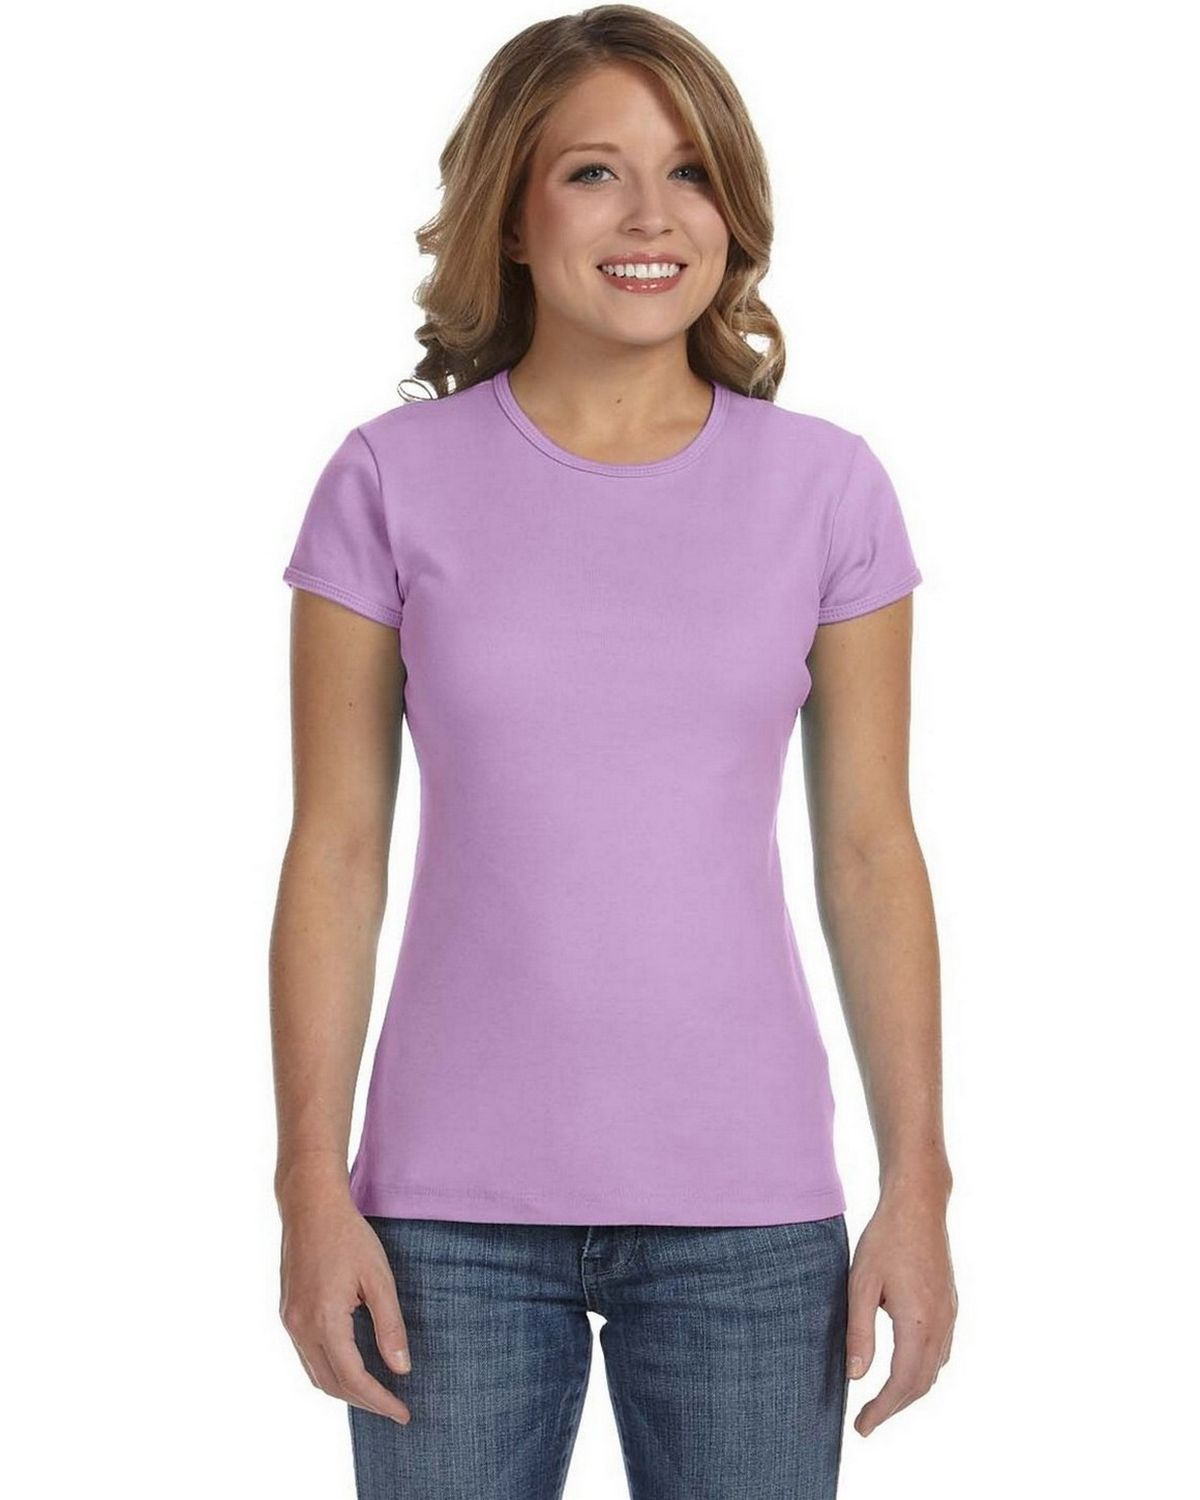 Bella + Canvas 1001 Ladies Stretch Rib Short-Sleeve T-Shirt - Lilac - S 1001